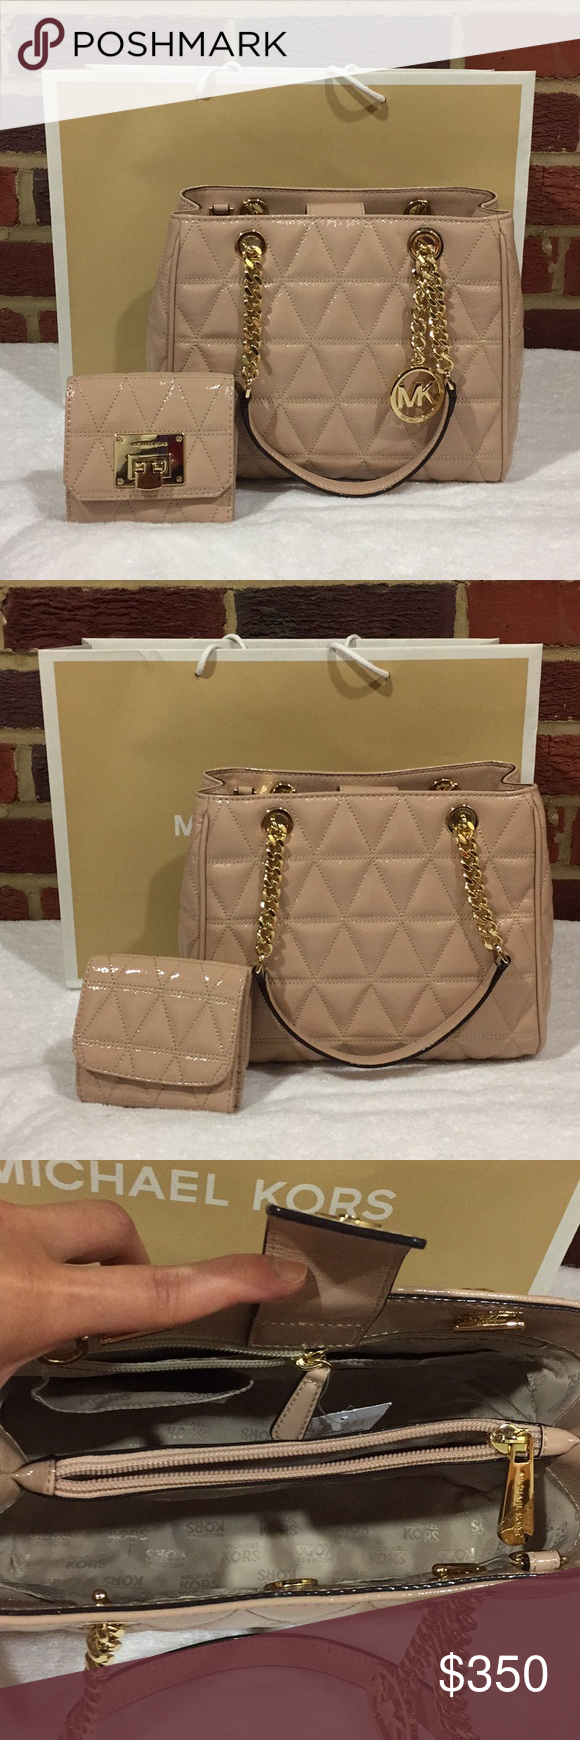 d282cf1143dc NWT Michael Kors Tote & Trifold Wallet Set NWT Michael Kors Susannah MD  Quilted Leather